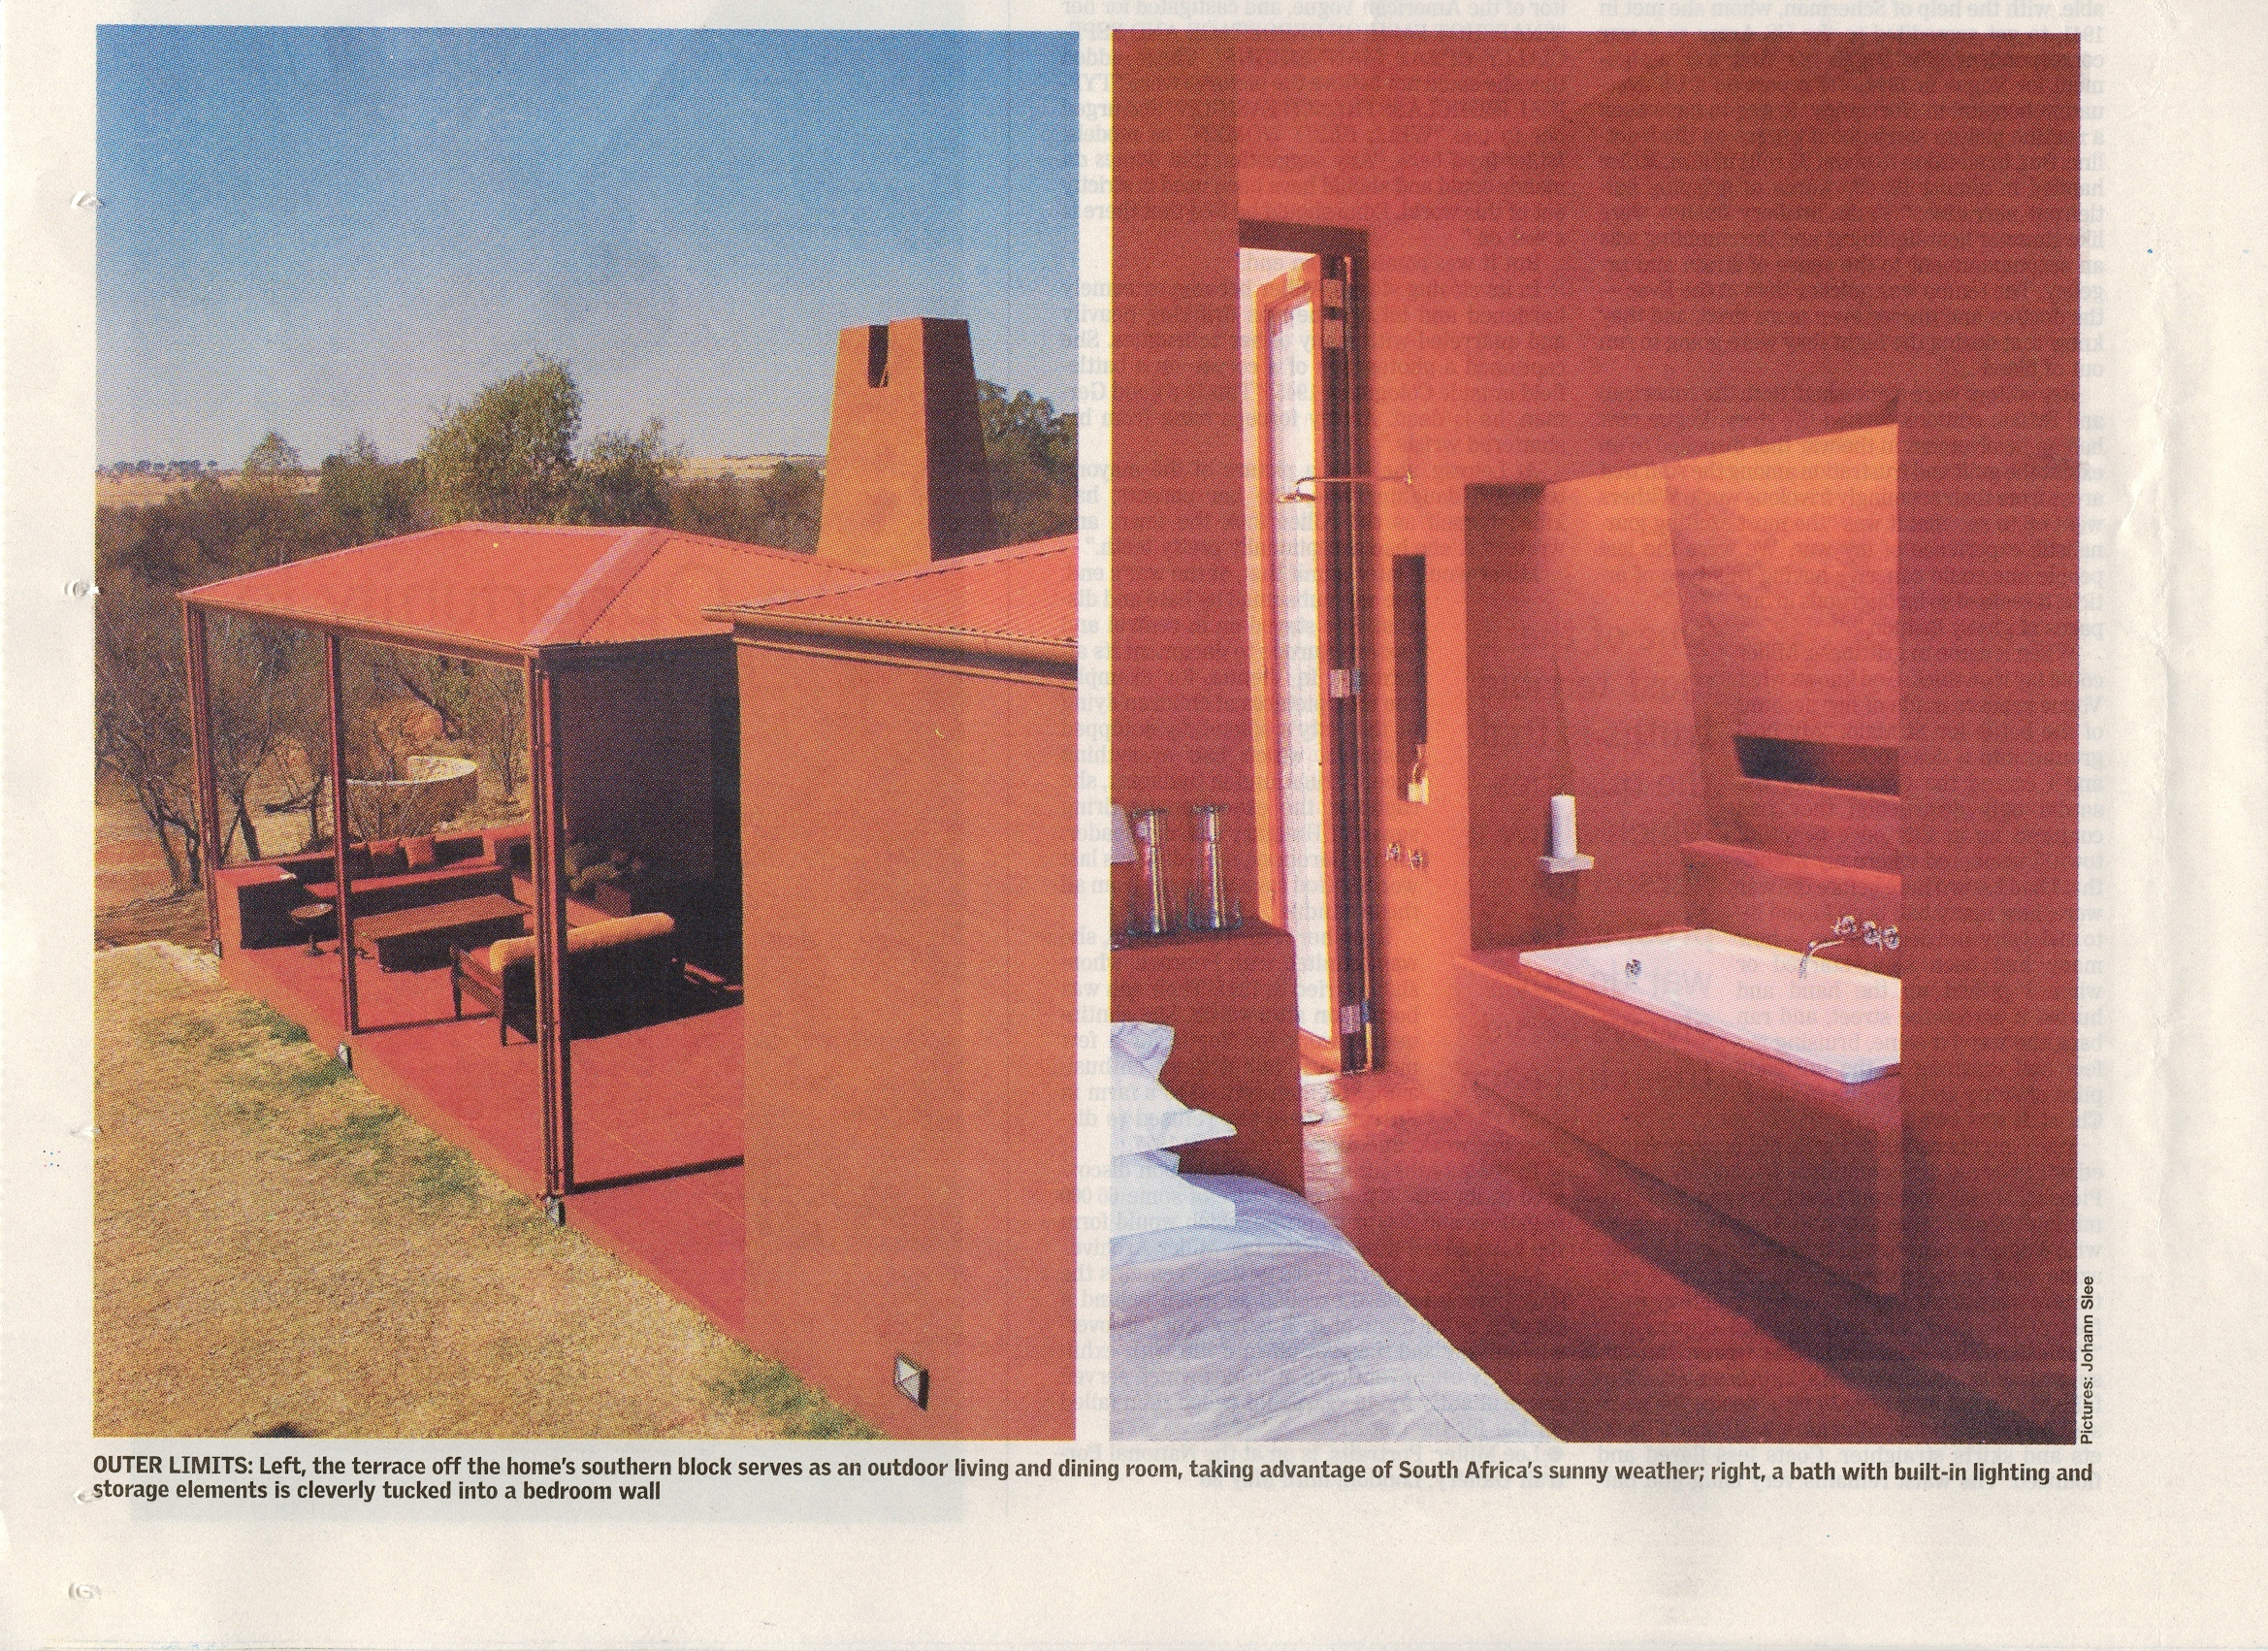 Sunday Times Lifestyle.2005.April.17.p14.1.Red Hot Free State.jpg